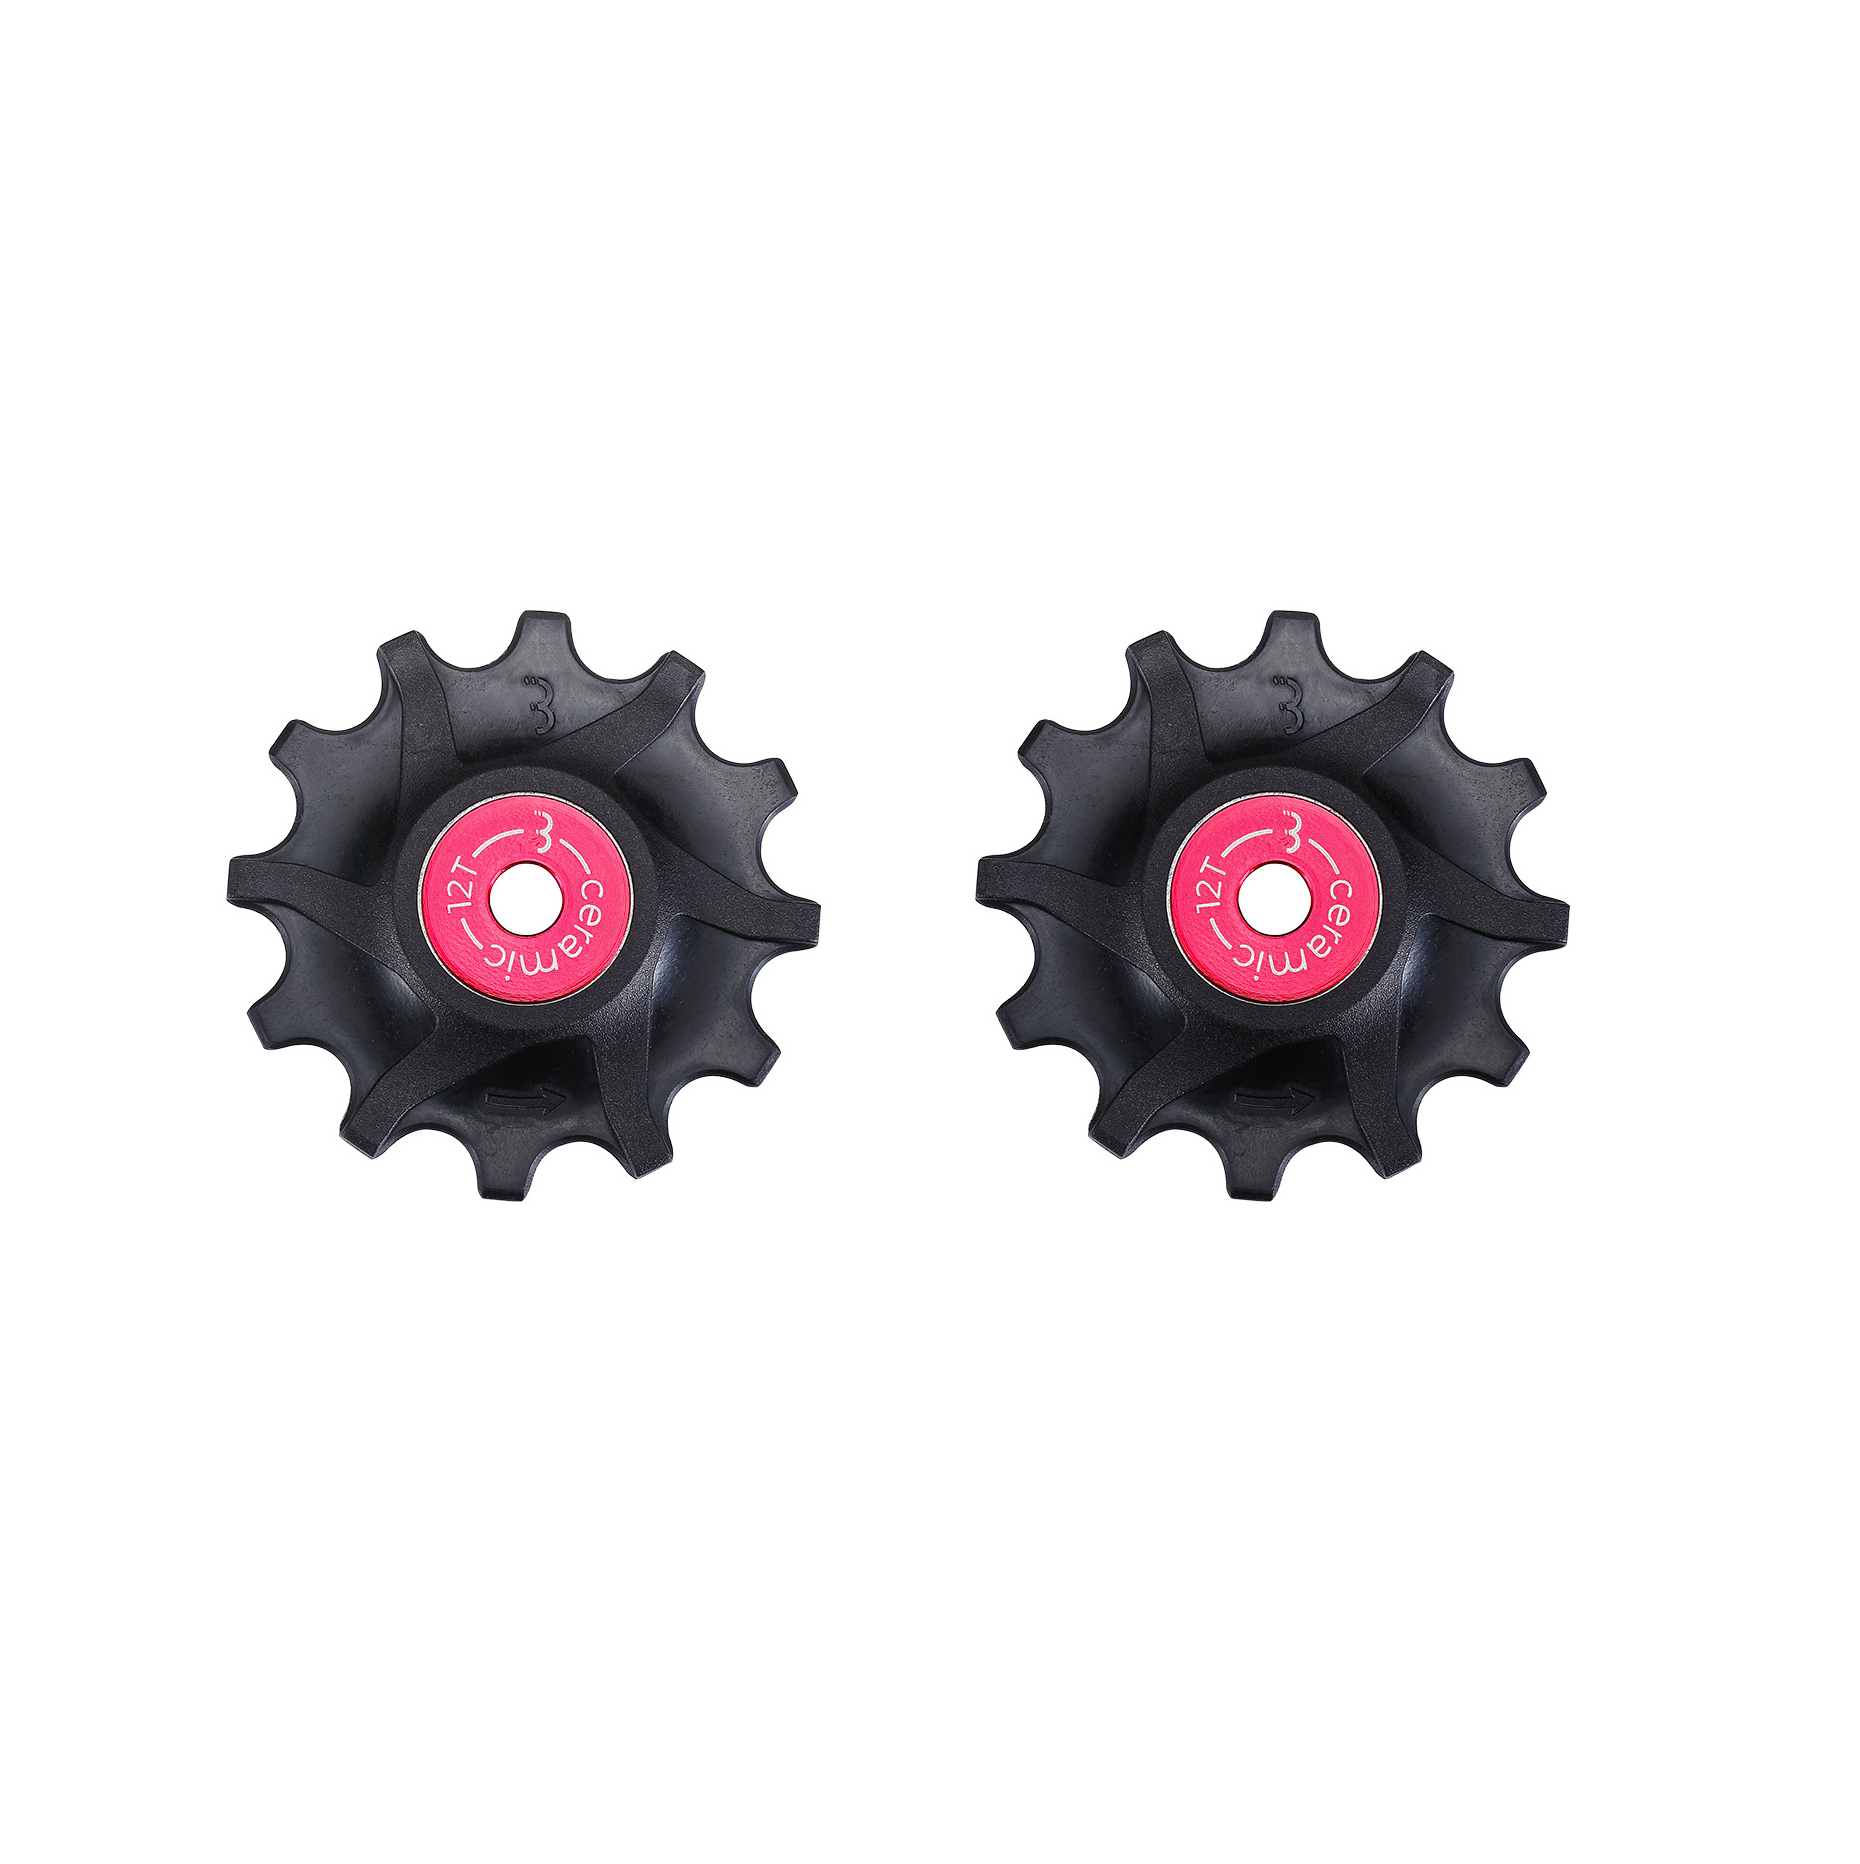 BBB Components > Gears BBB  ROLLERBOYS CERAMIC SRAM JOCKEY WHEELS 12T BDP-16